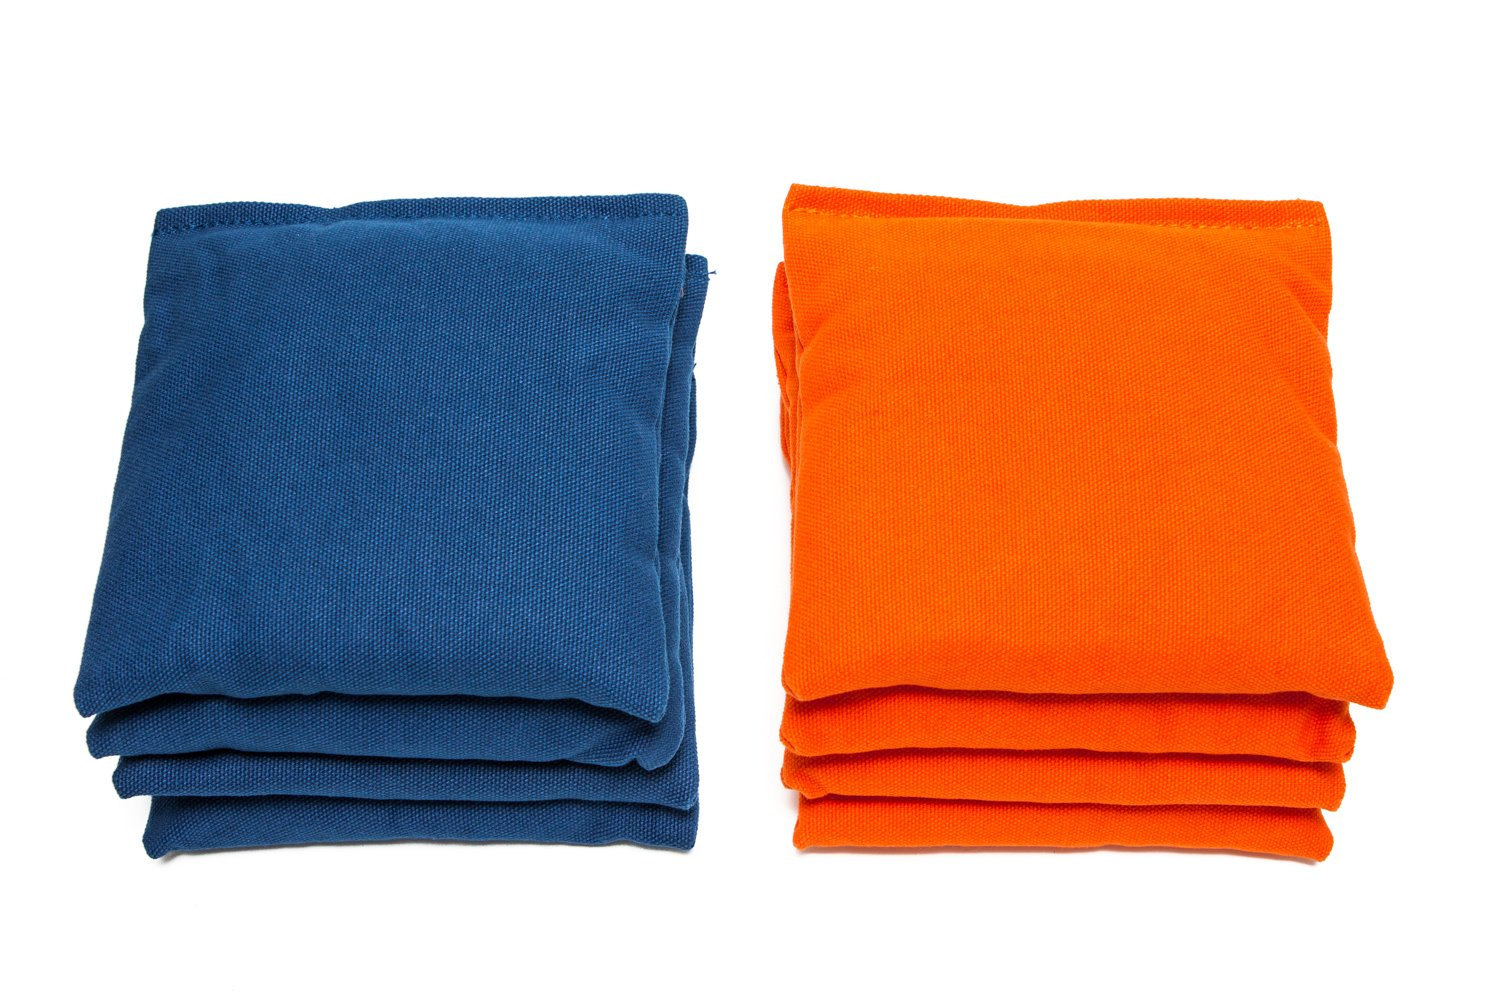 Weather Resistant Cornhole Bags (Set of 8) by SC Cornhole (Royal Blue/Orange) by SC Cornhole Games